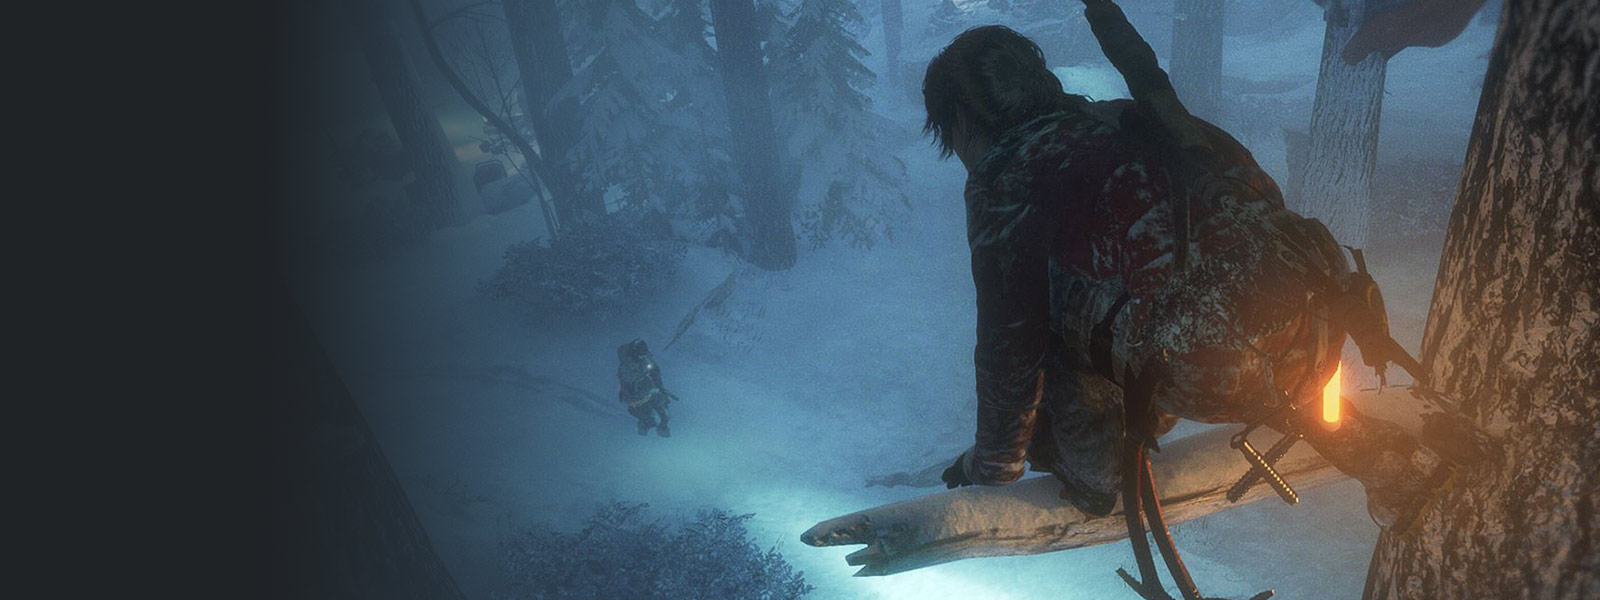 Lara on a snowy tree branch preparing to lunge at the enemy below